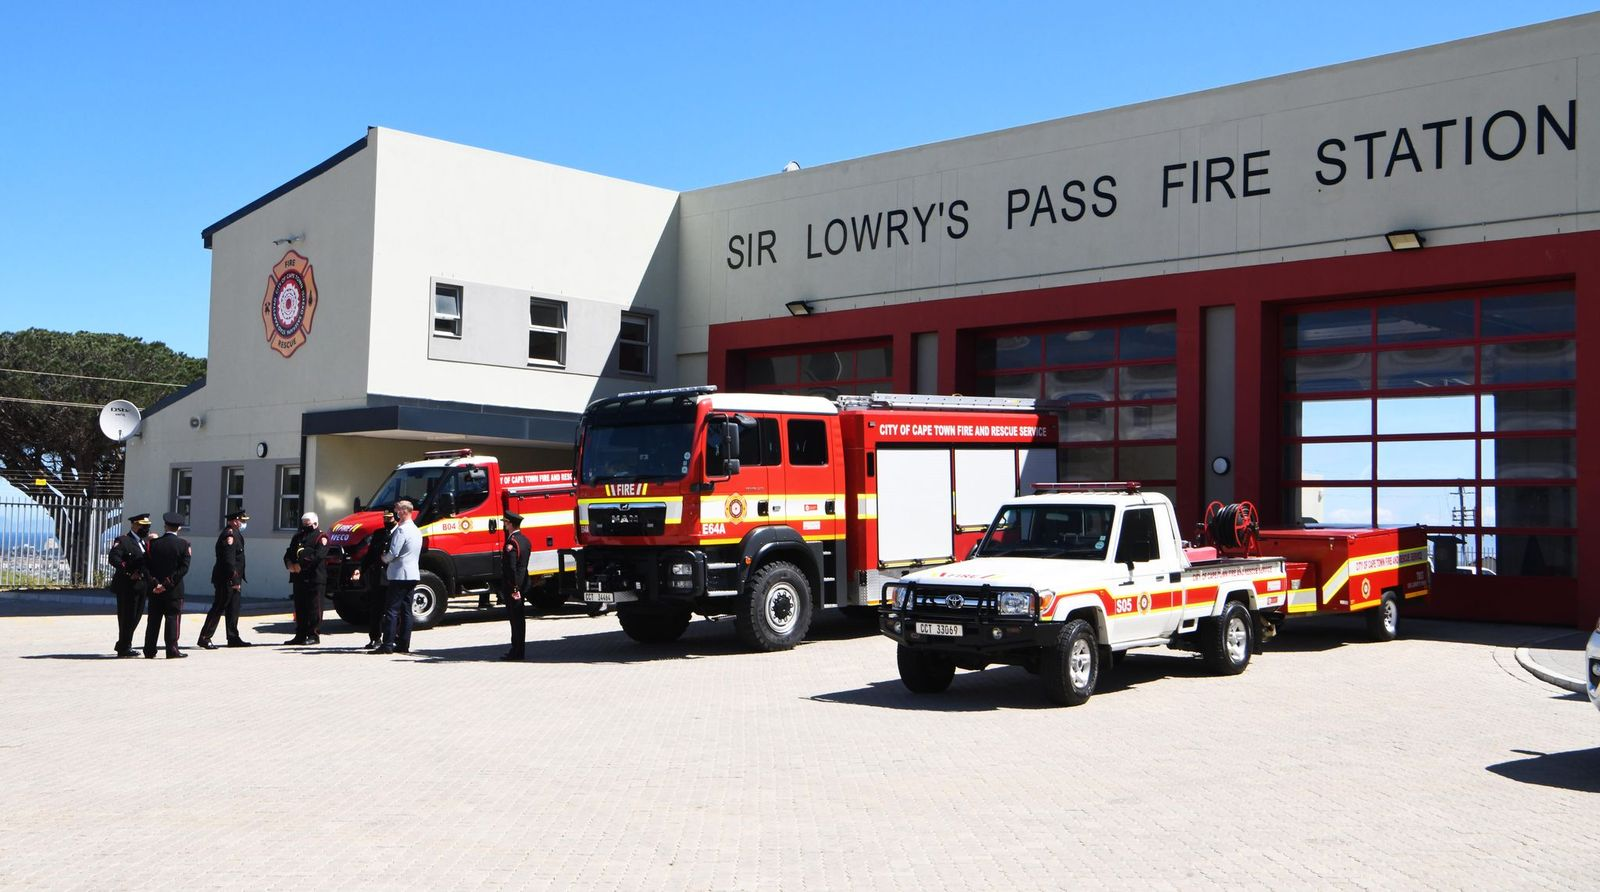 City officially opens Sir Lowry's Pass Fire Station